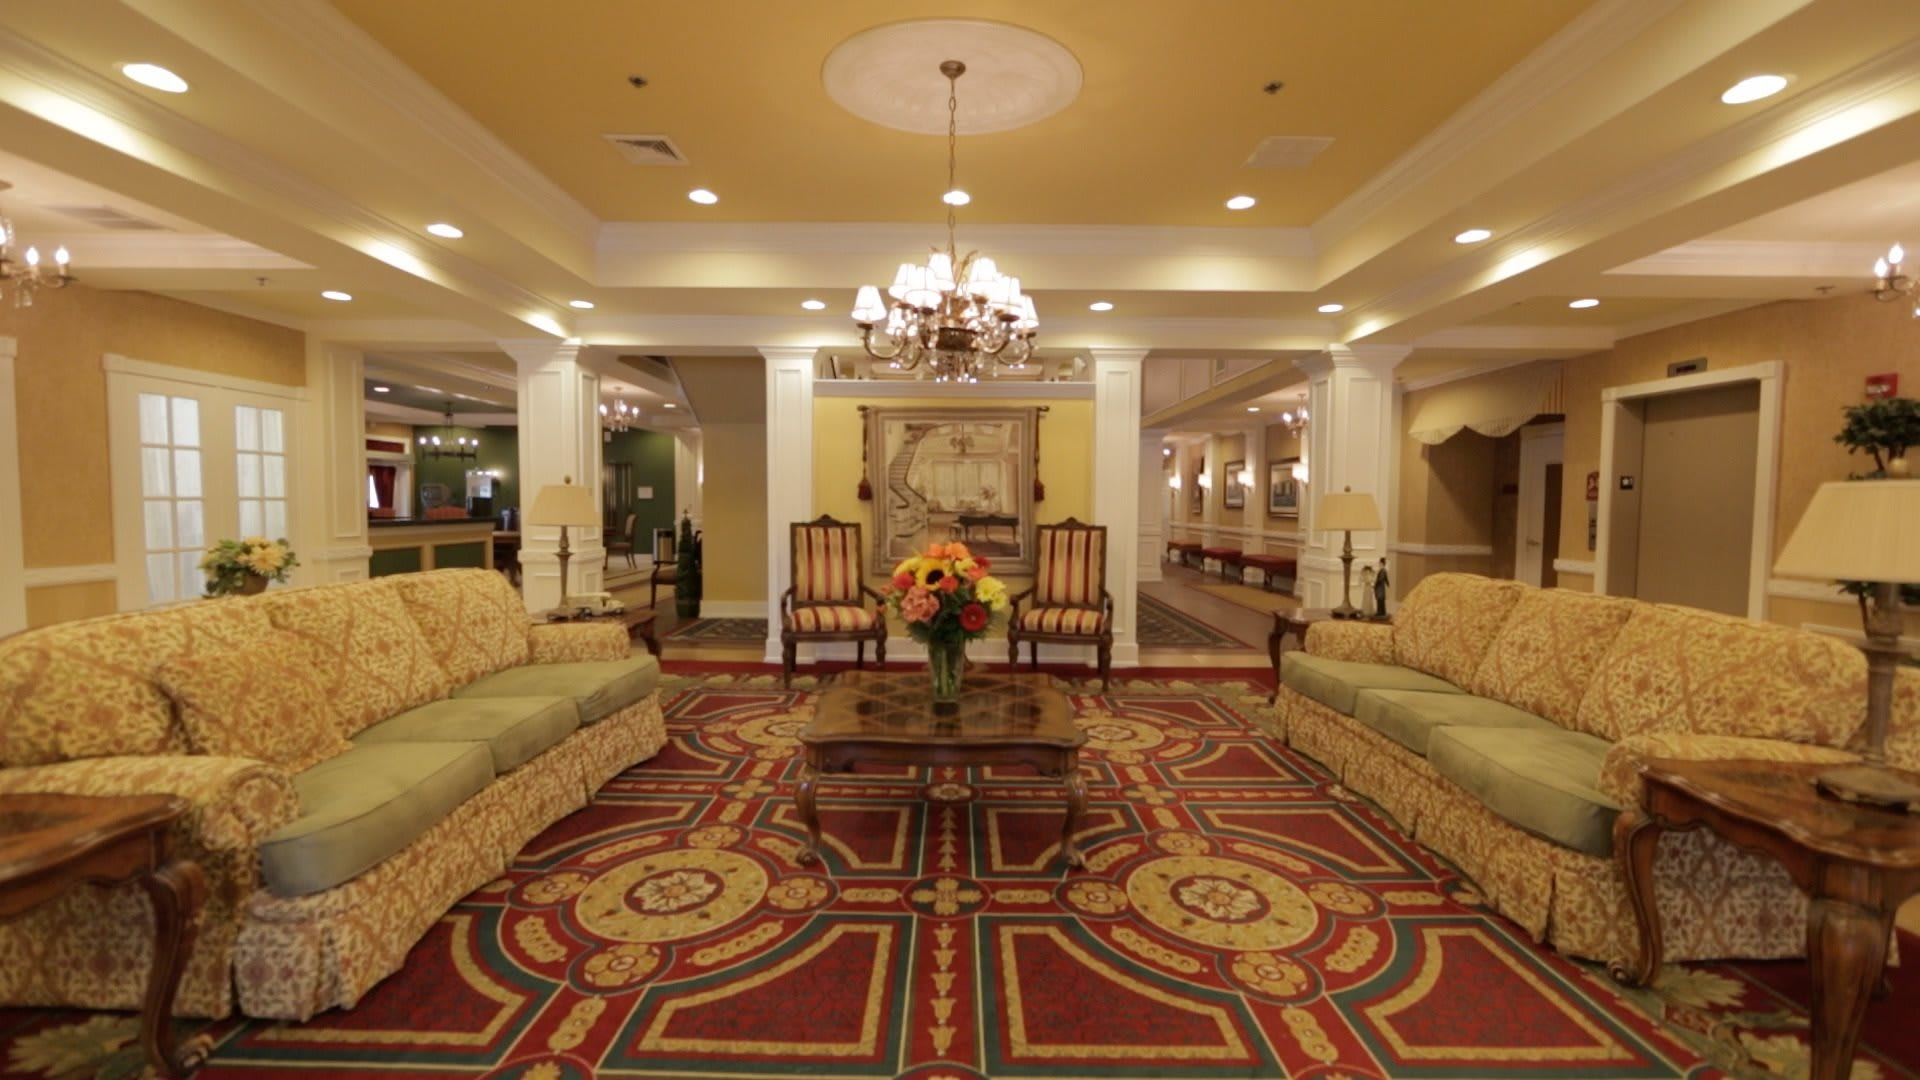 Photo 1 of CareOne at Evesham Assisted Living